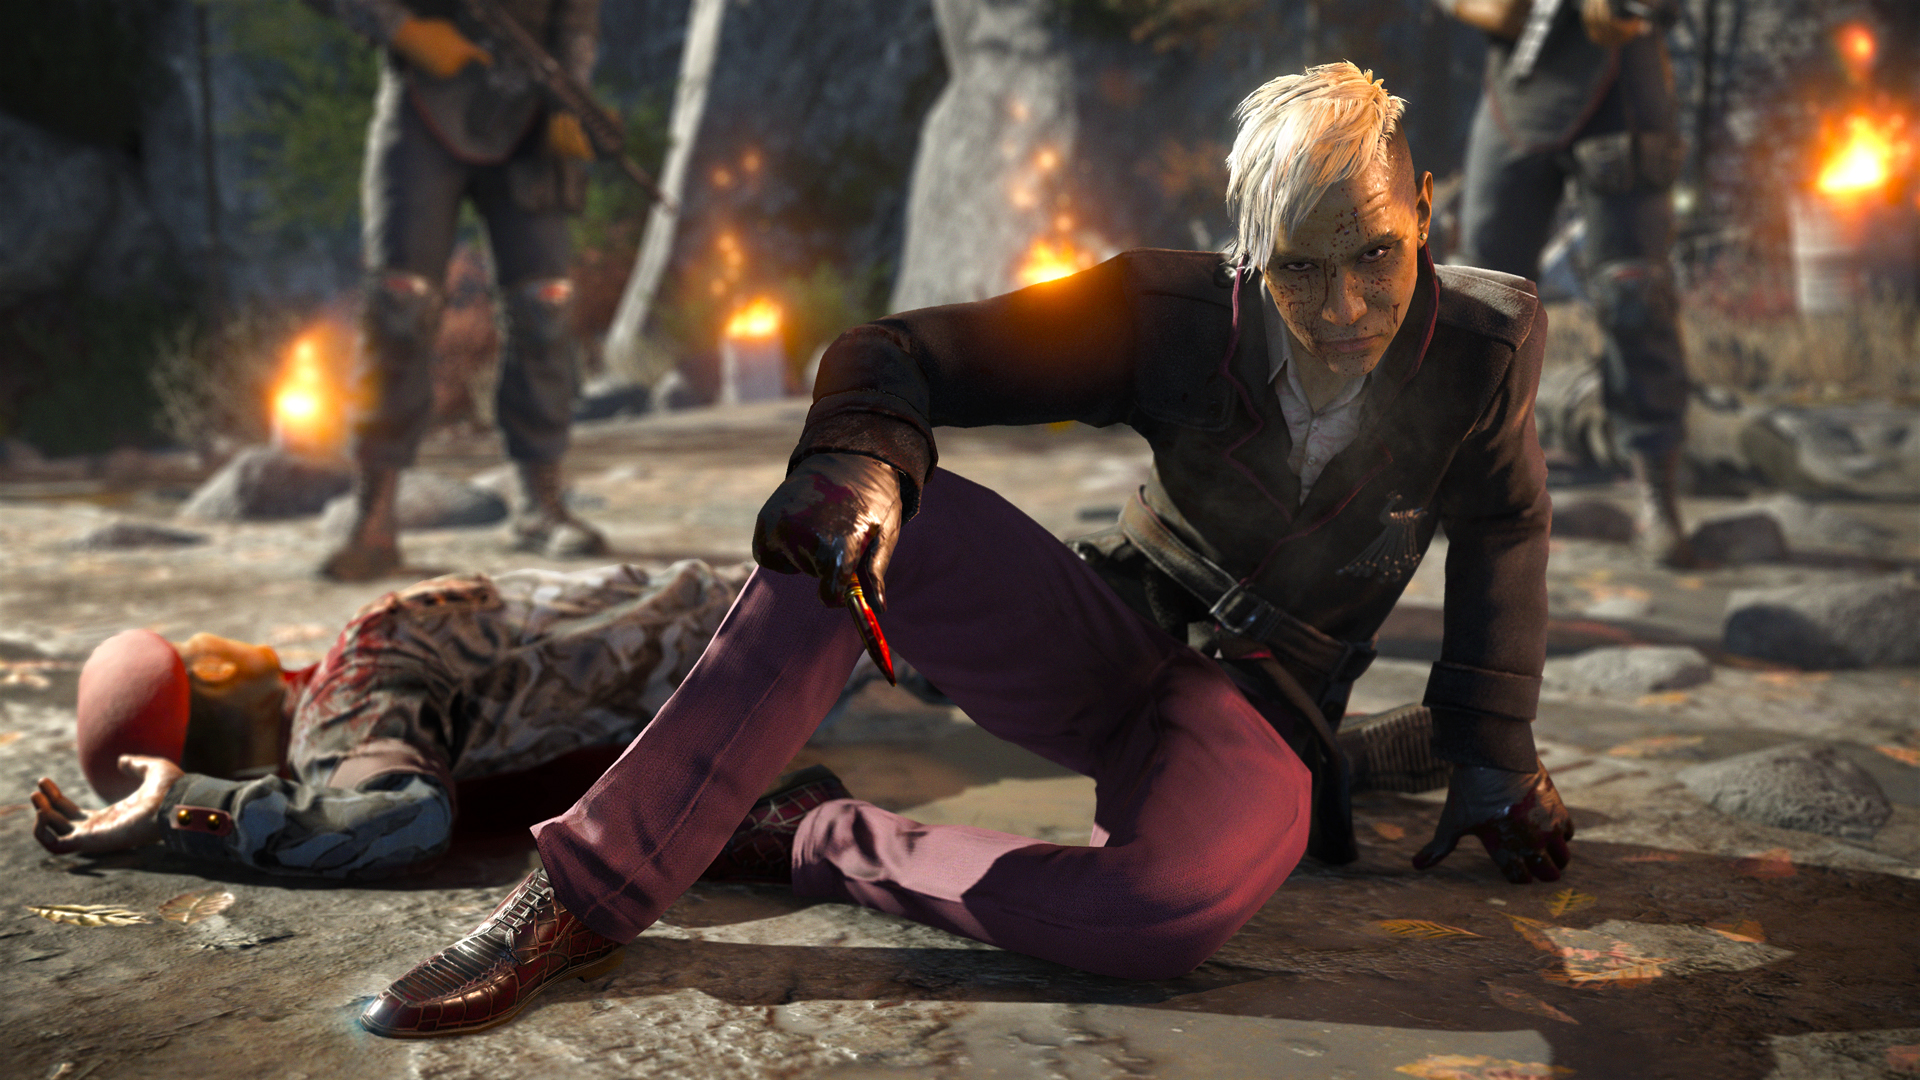 Go deeper into Far Cry 4's story with its latest trailer